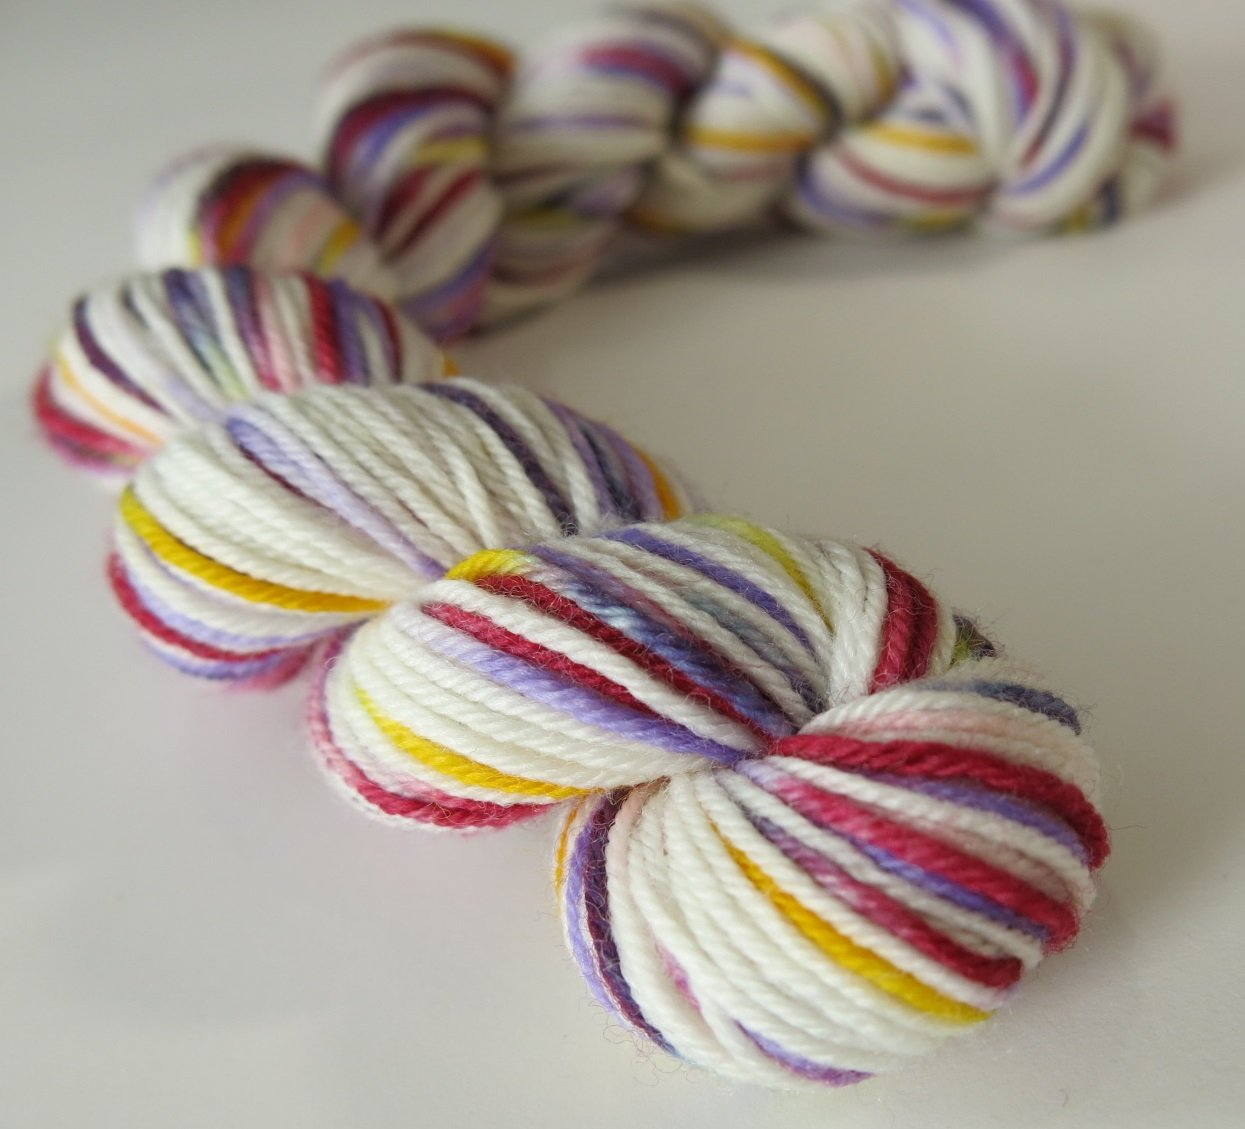 4 ply sock yarn mini skeins inspired by the white rabbit in wonderland